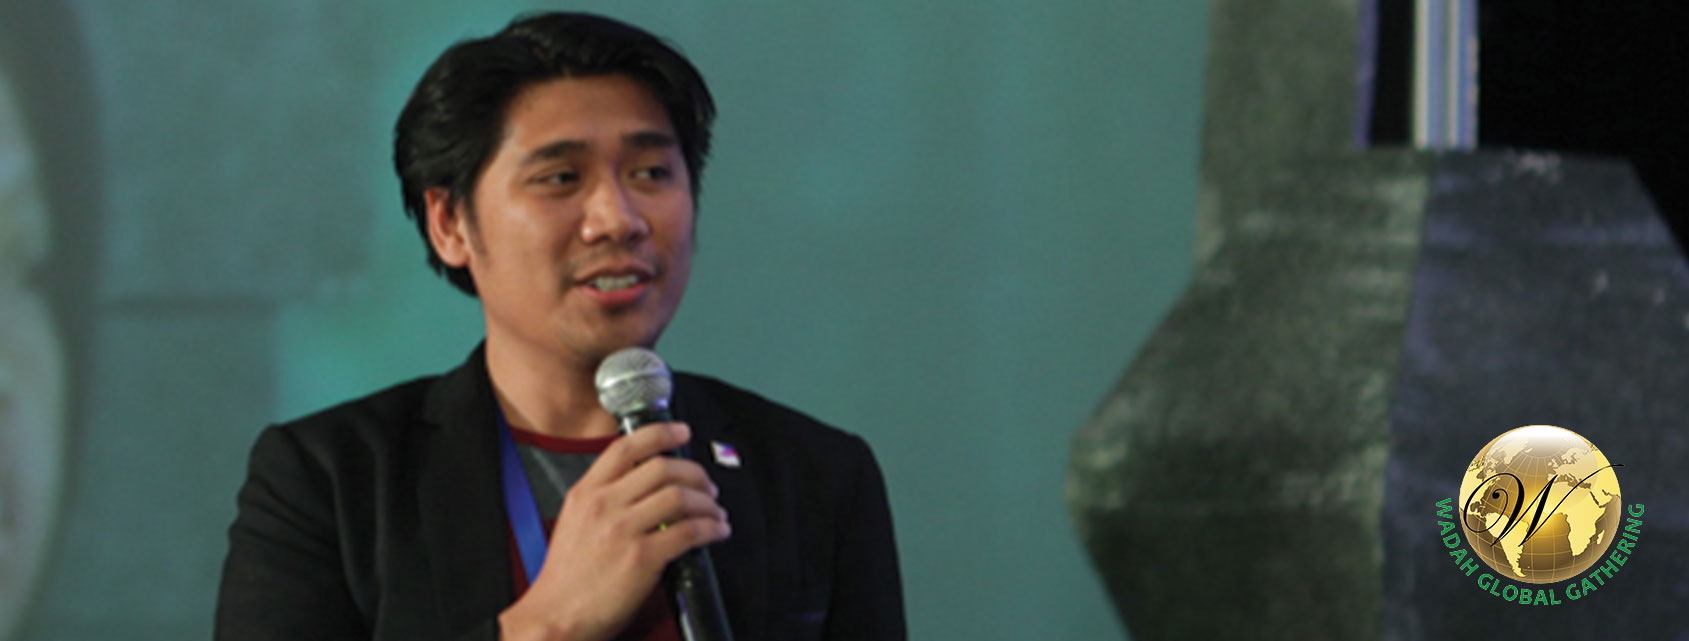 Efren Peñaflorida,  CNN Hero of the Year 2009, Dynamic Teen Company